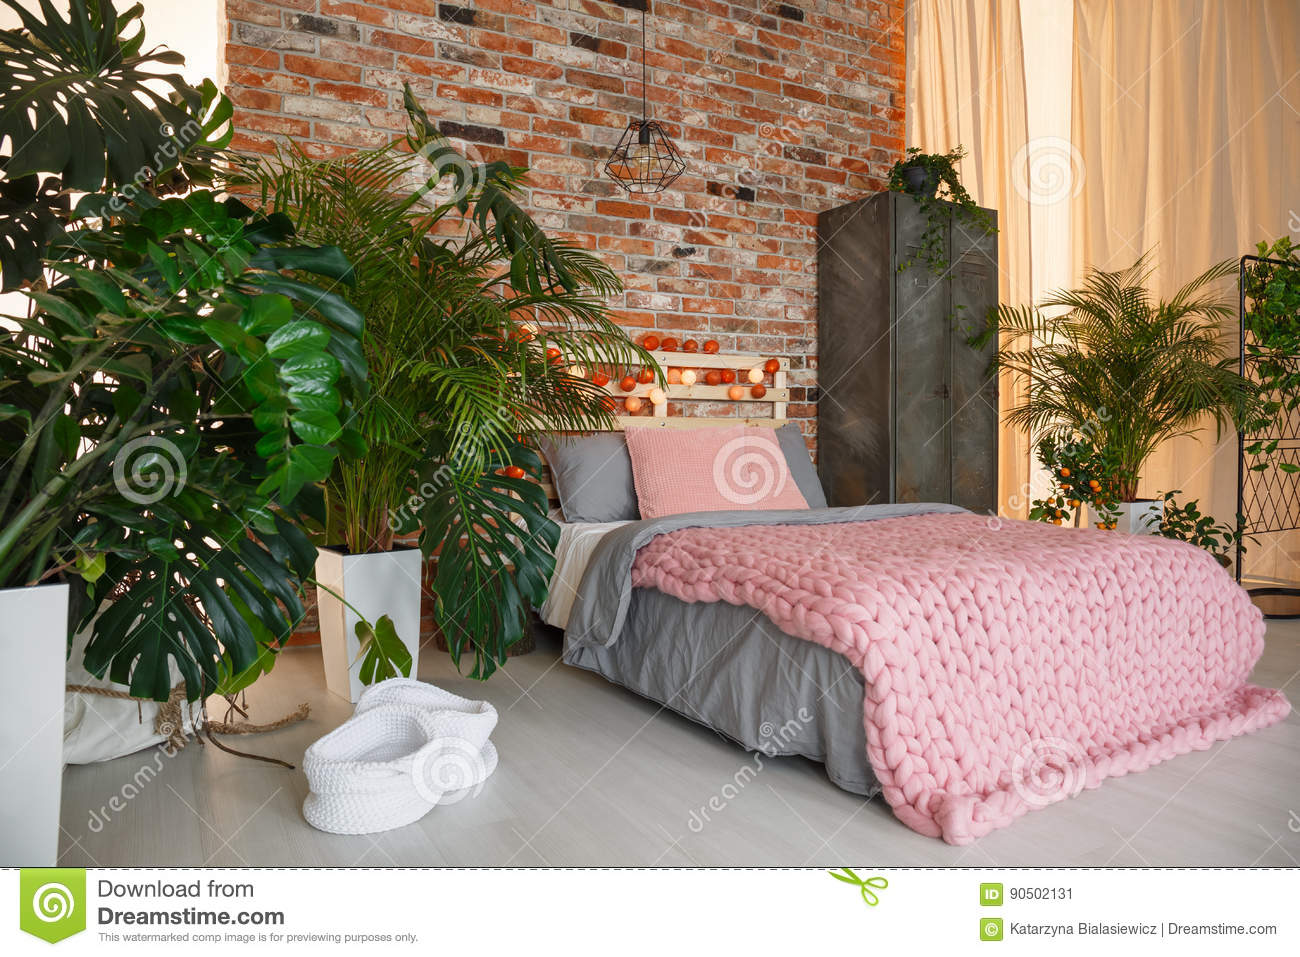 https://thumbs.dreamstime.com/z/piante-camera-da-letto-90502131.jpg